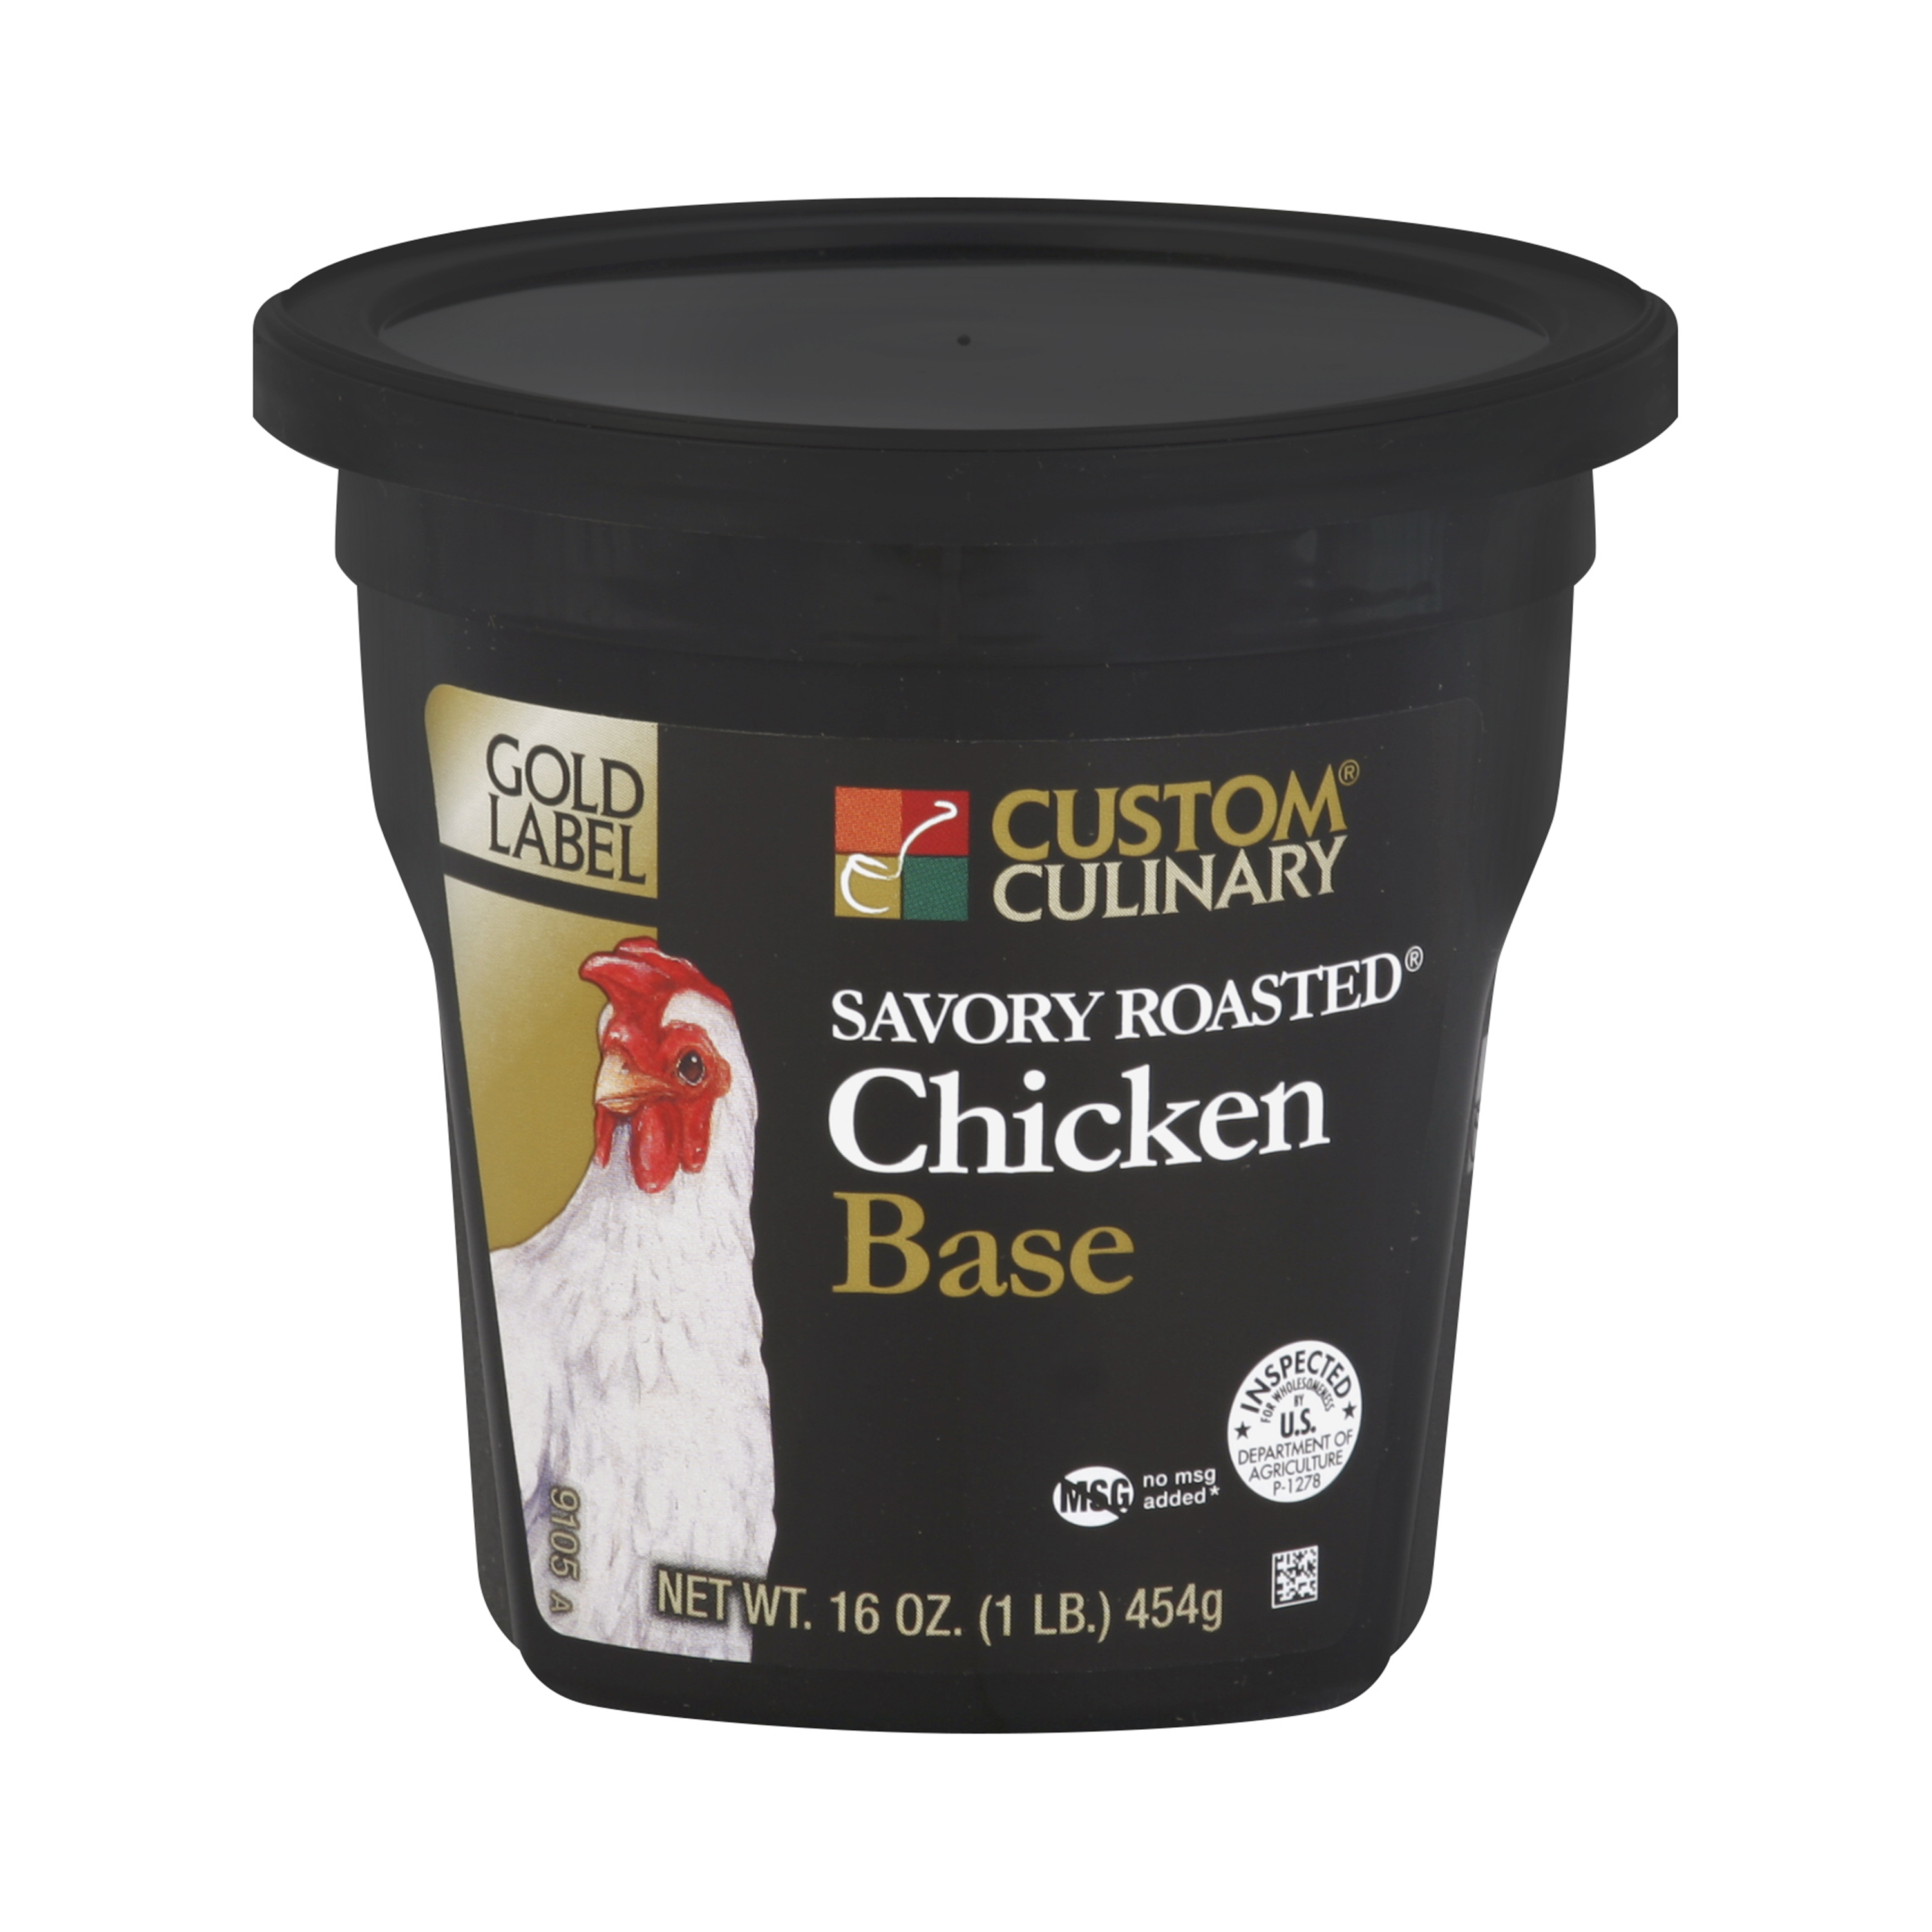 9105 - GOLD LABEL Savory Roasted  Chicken Base No MSG Added